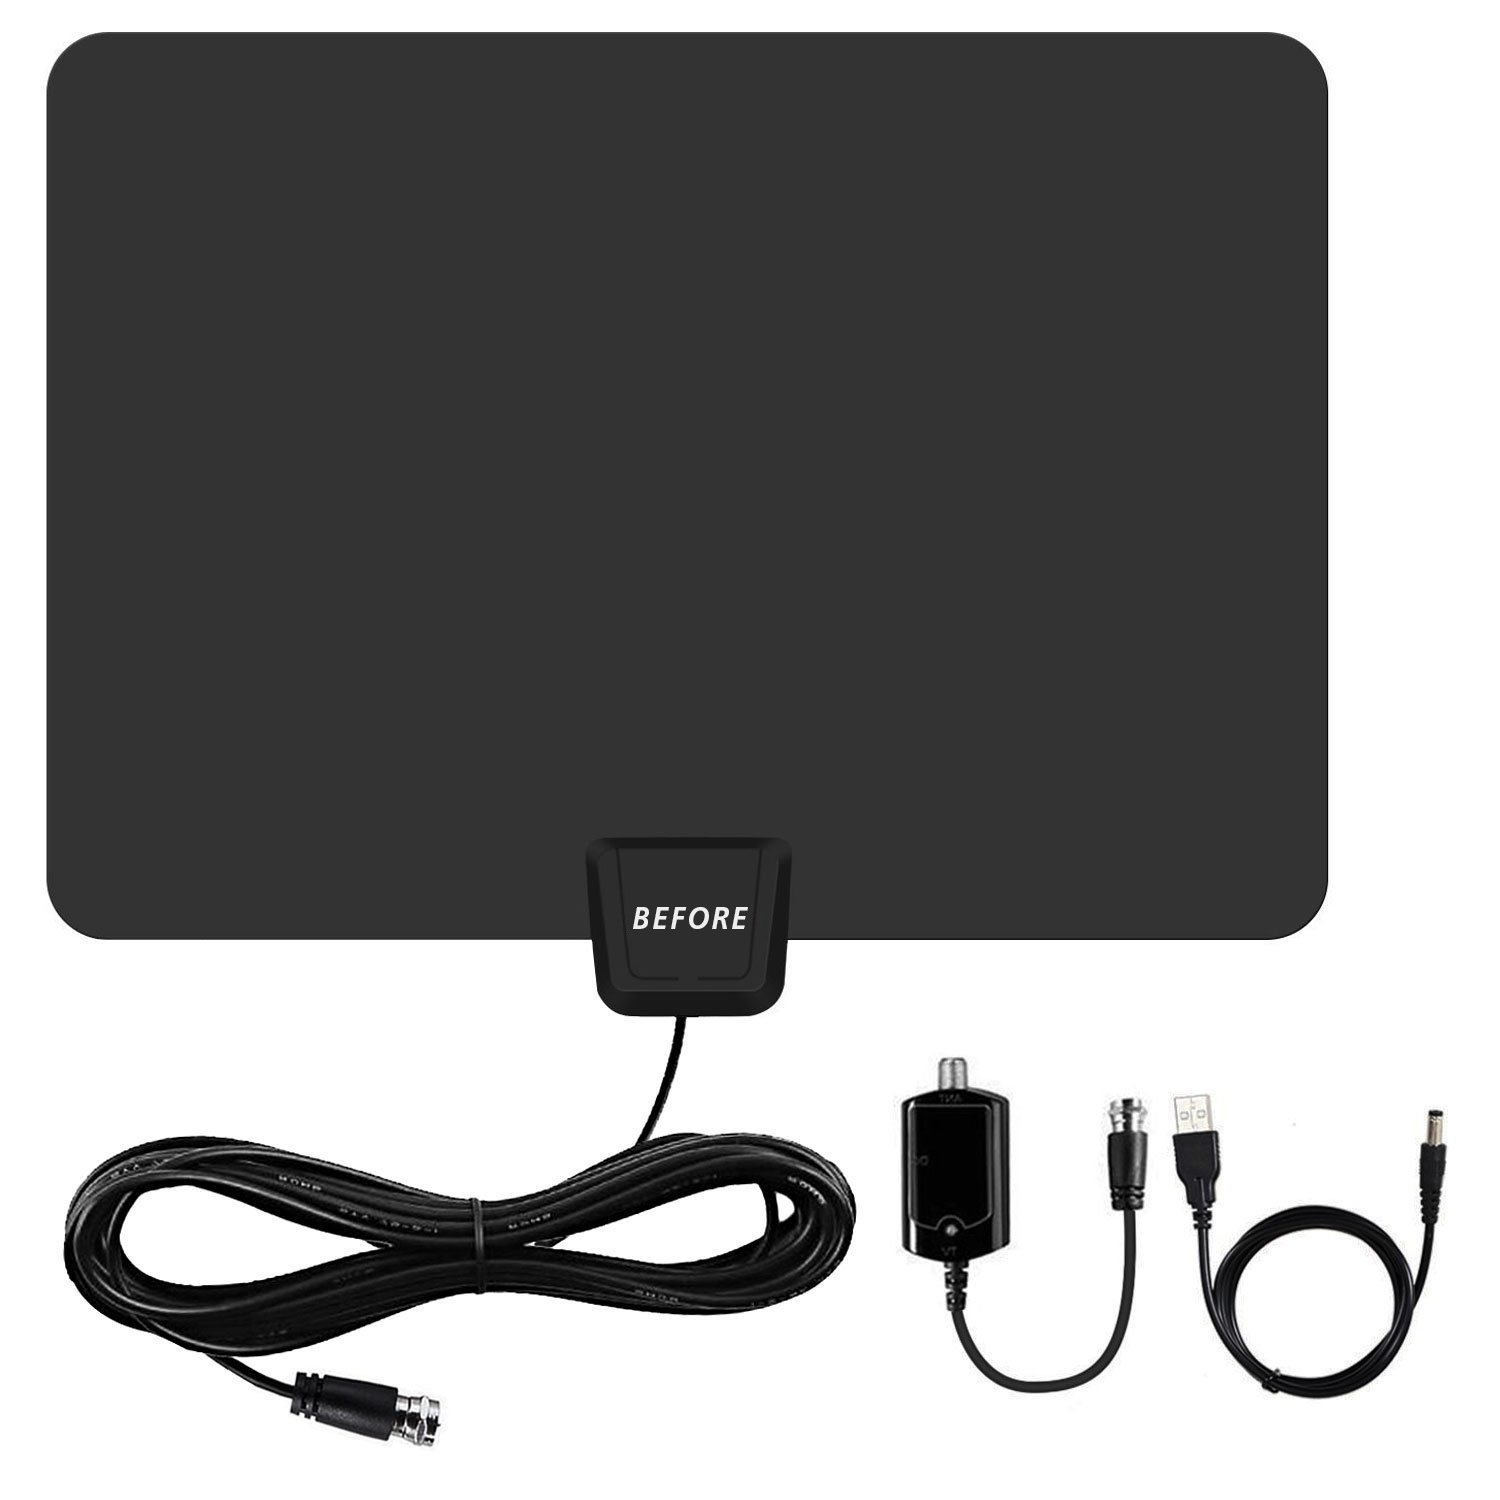 TV Antenna,Amplified Indoor HDTV Antenna 50-70 Miles Range [2018 Newest Version] Support 4K 1080p Free TV Channels with Detachable Signal Booster and 13.2ft Long Coaxial Cable by BEFORE